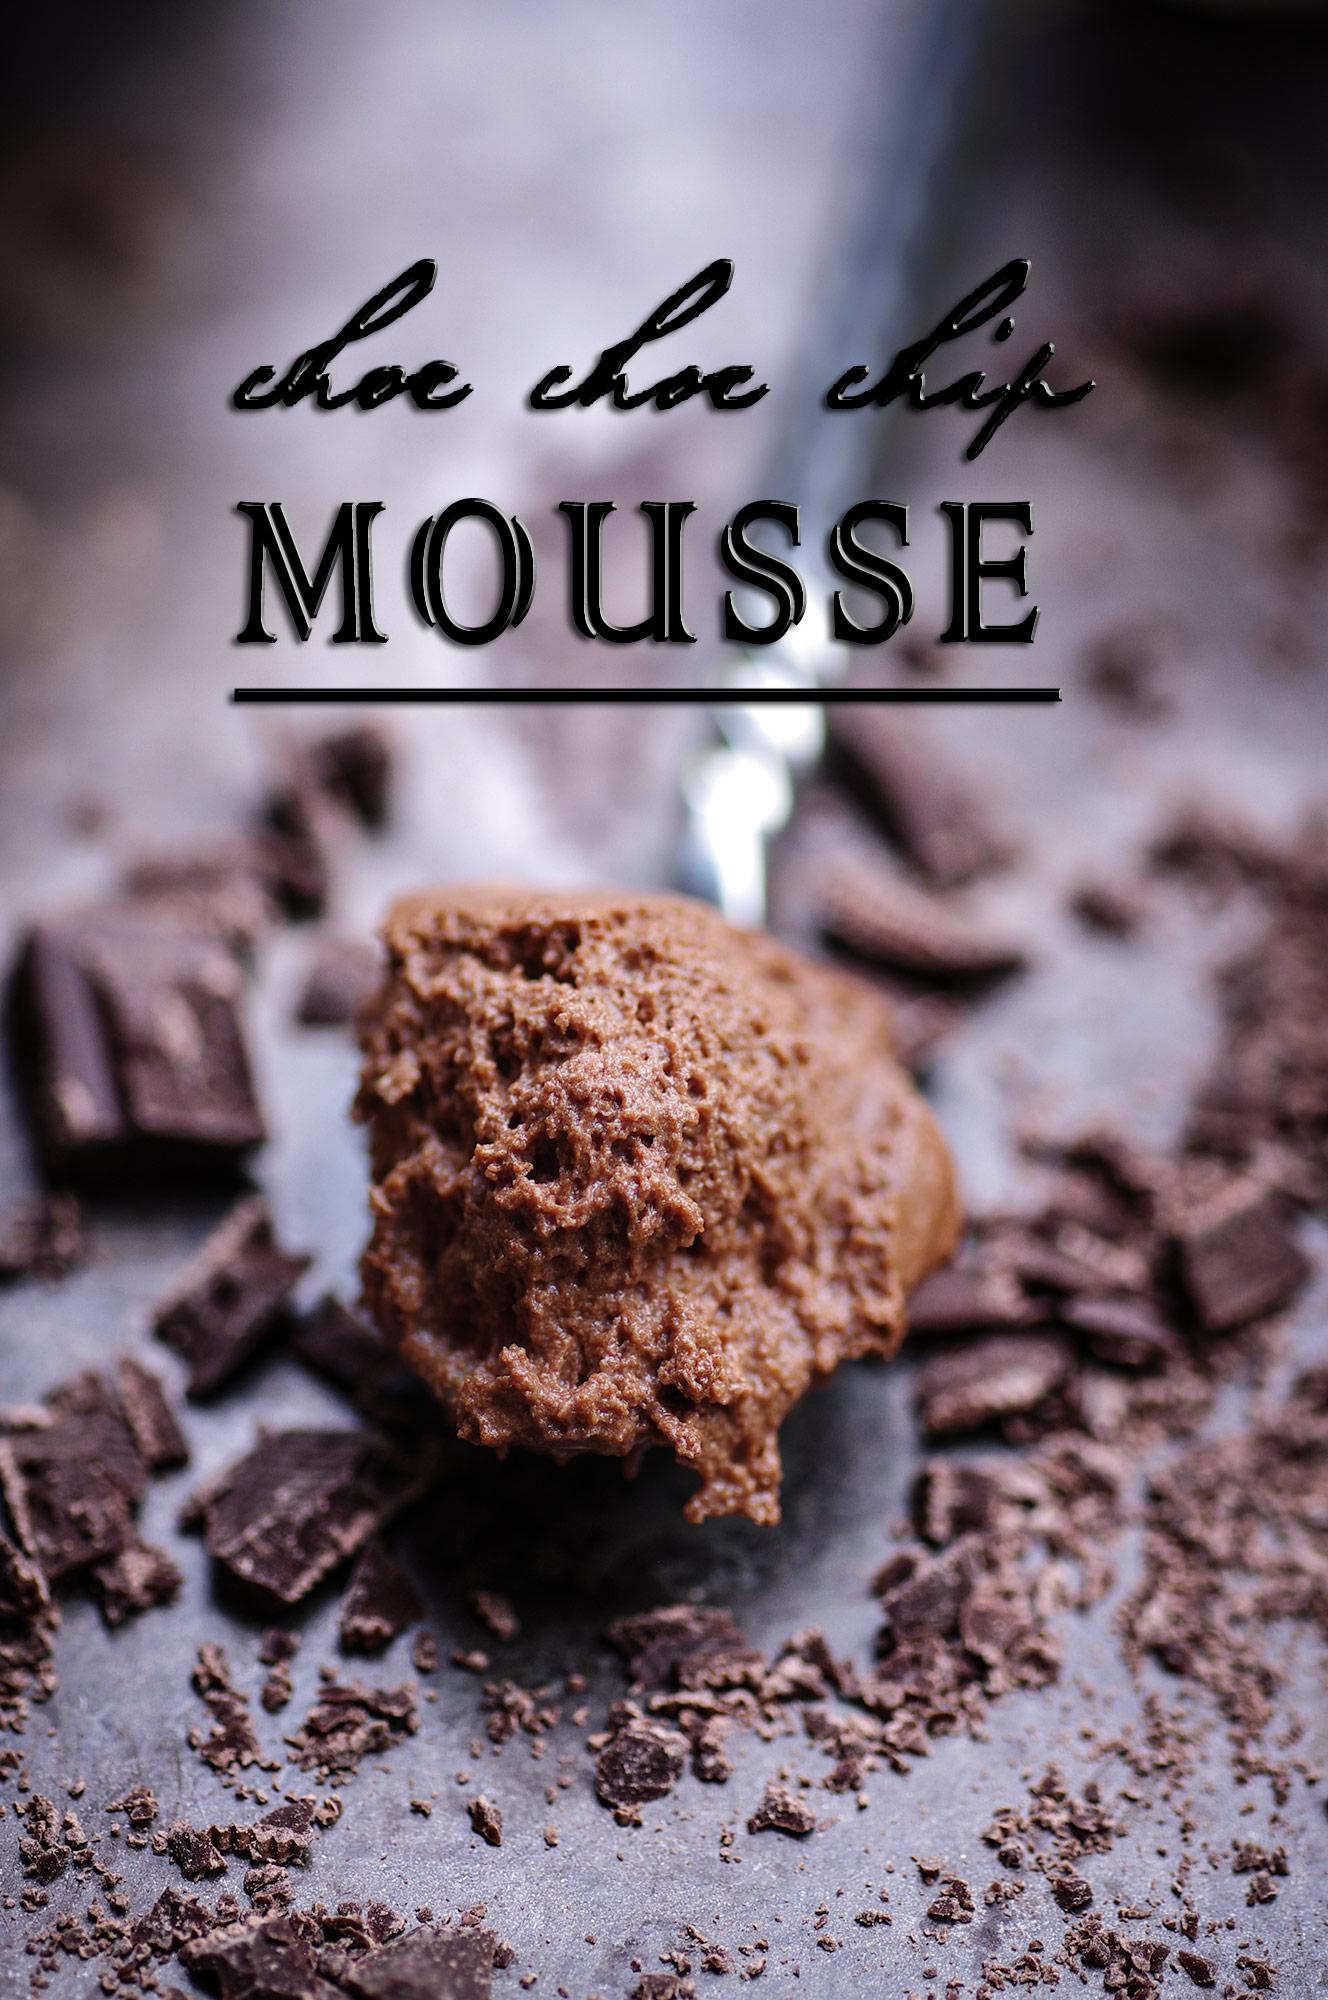 chocolate mousse, creamy, foamy, light, fluffy, airy, chocolate, sweet, vegan, recipe, light, healthy, gluten free, chocolat, recite, kosher, kasher, cacher, dessert, sucré, facile, rapide, quick, easy